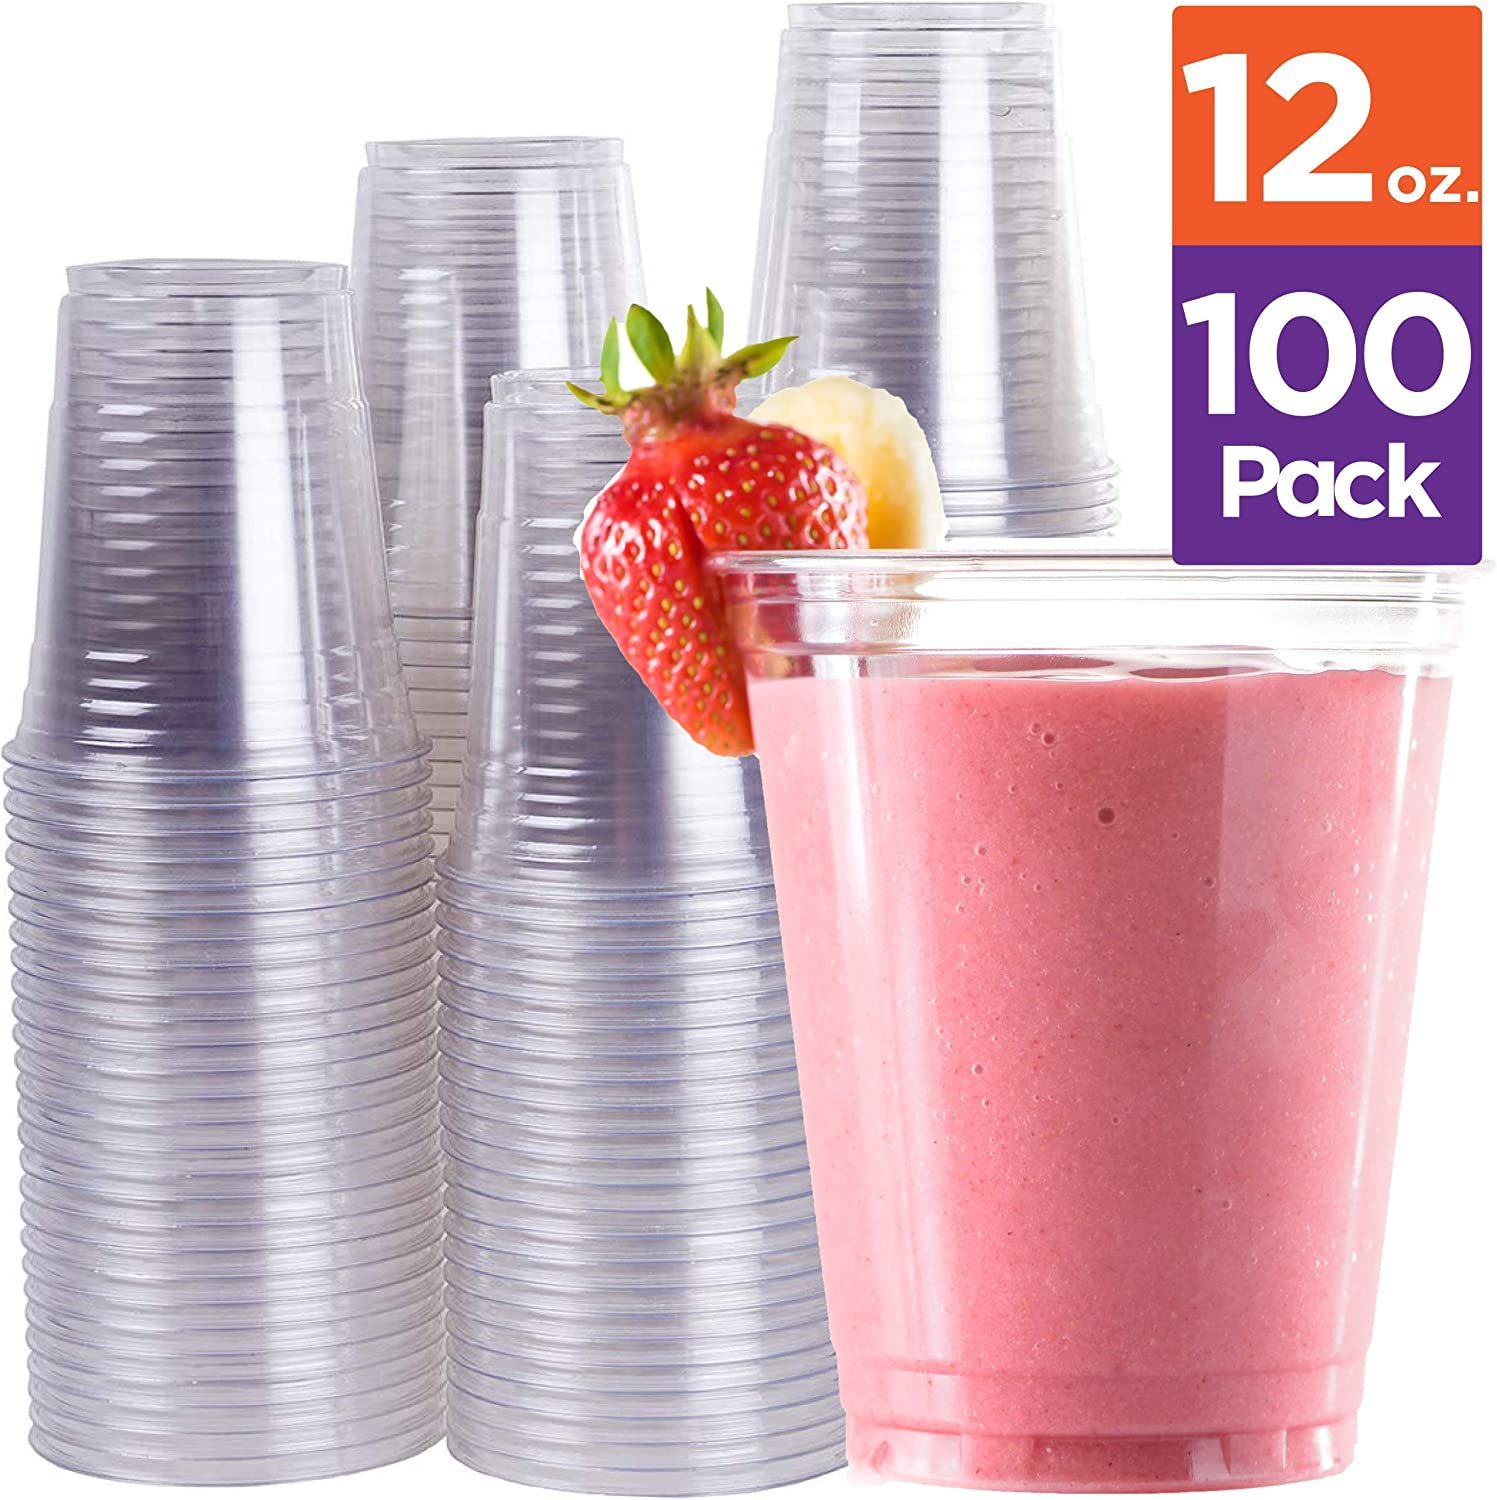 Stack Man - PET12-100 Disposable Plastic Cups 12 oz [100 Pack] Ultra Clear PET Drinking Cups, Perfect Use For Cold Drink, Party, Beer, Smoothies Premium Quality Tumblers